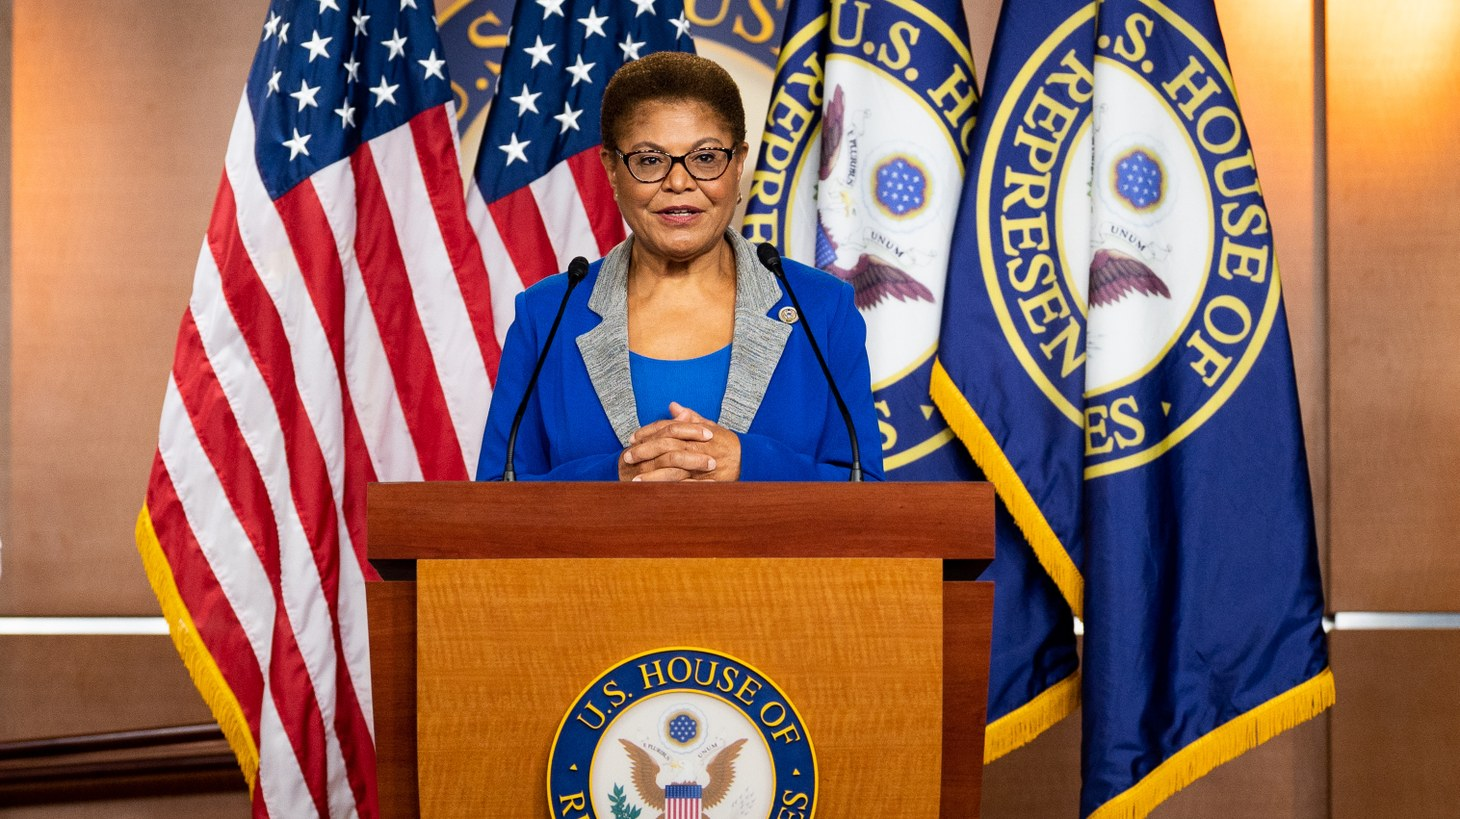 U.S. Representative Karen Bass (D-CA) speaking at a press conference about H.R.7573, proposed legislation to remove all statues of individuals who voluntarily served the Confederate states of America from display in the United States Capitol. July 22, 2020.